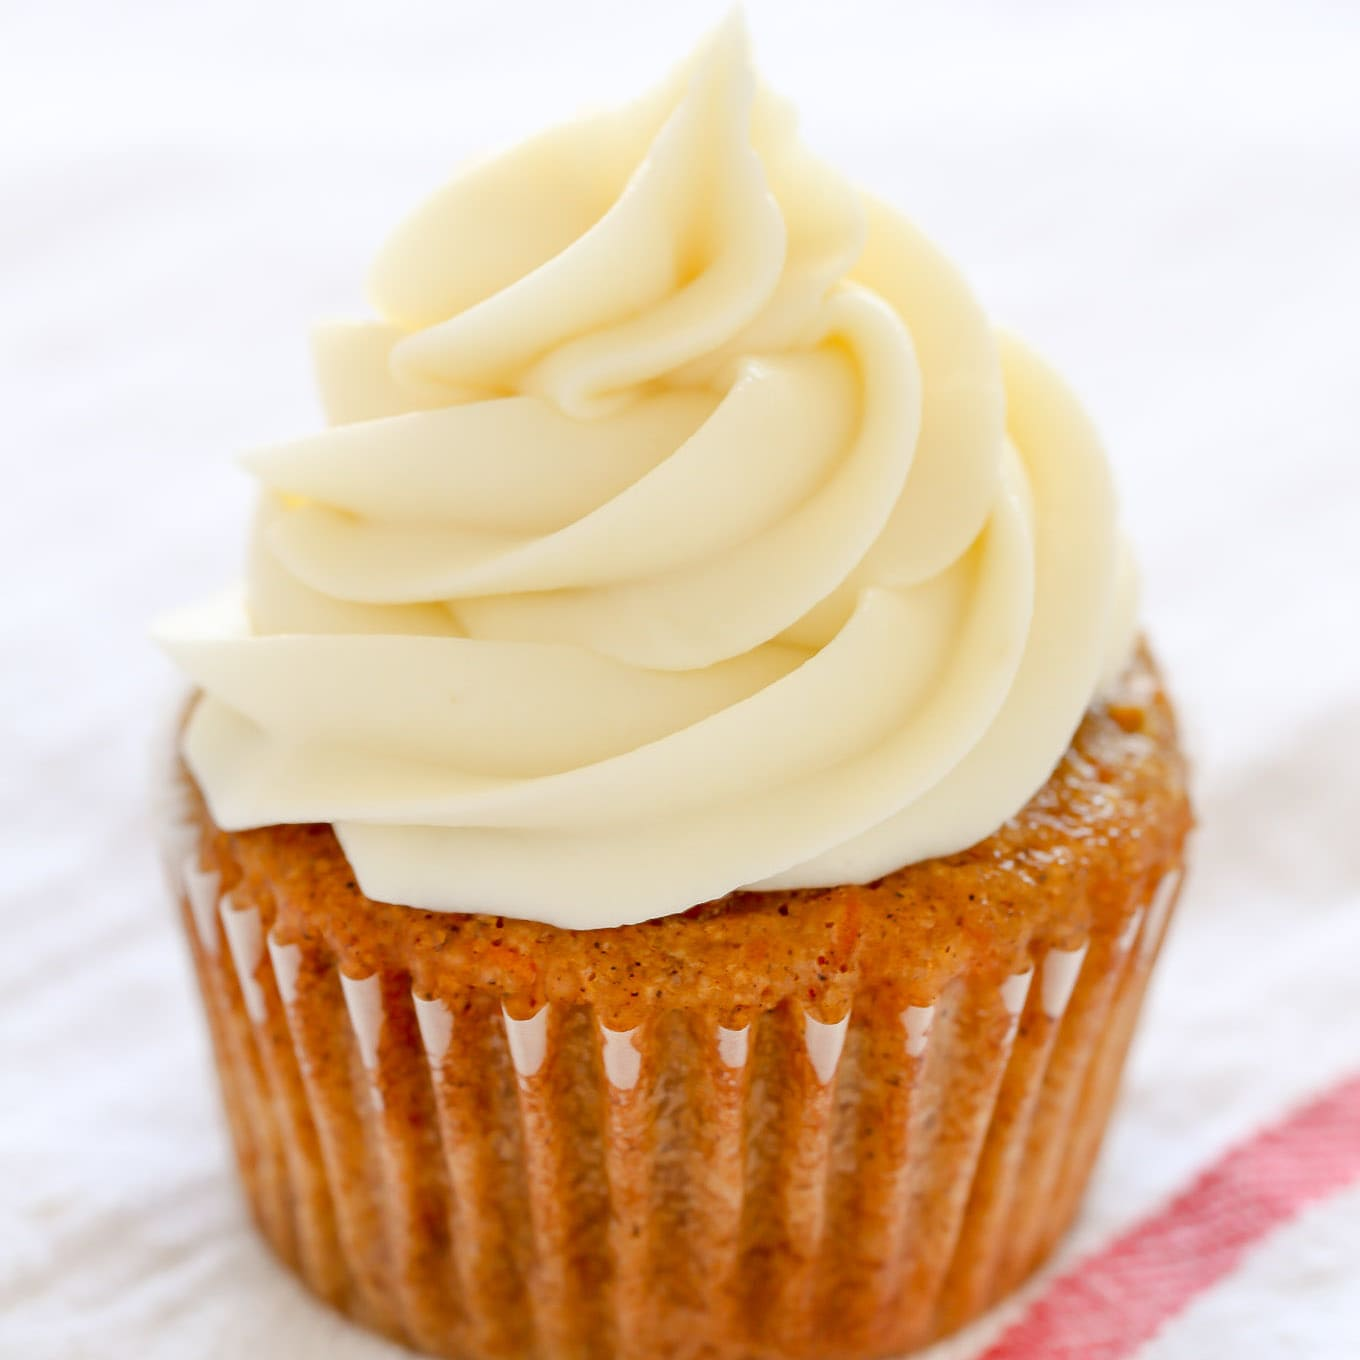 Communication on this topic: Spice Cake with Brown-Butter Frosting, spice-cake-with-brown-butter-frosting/